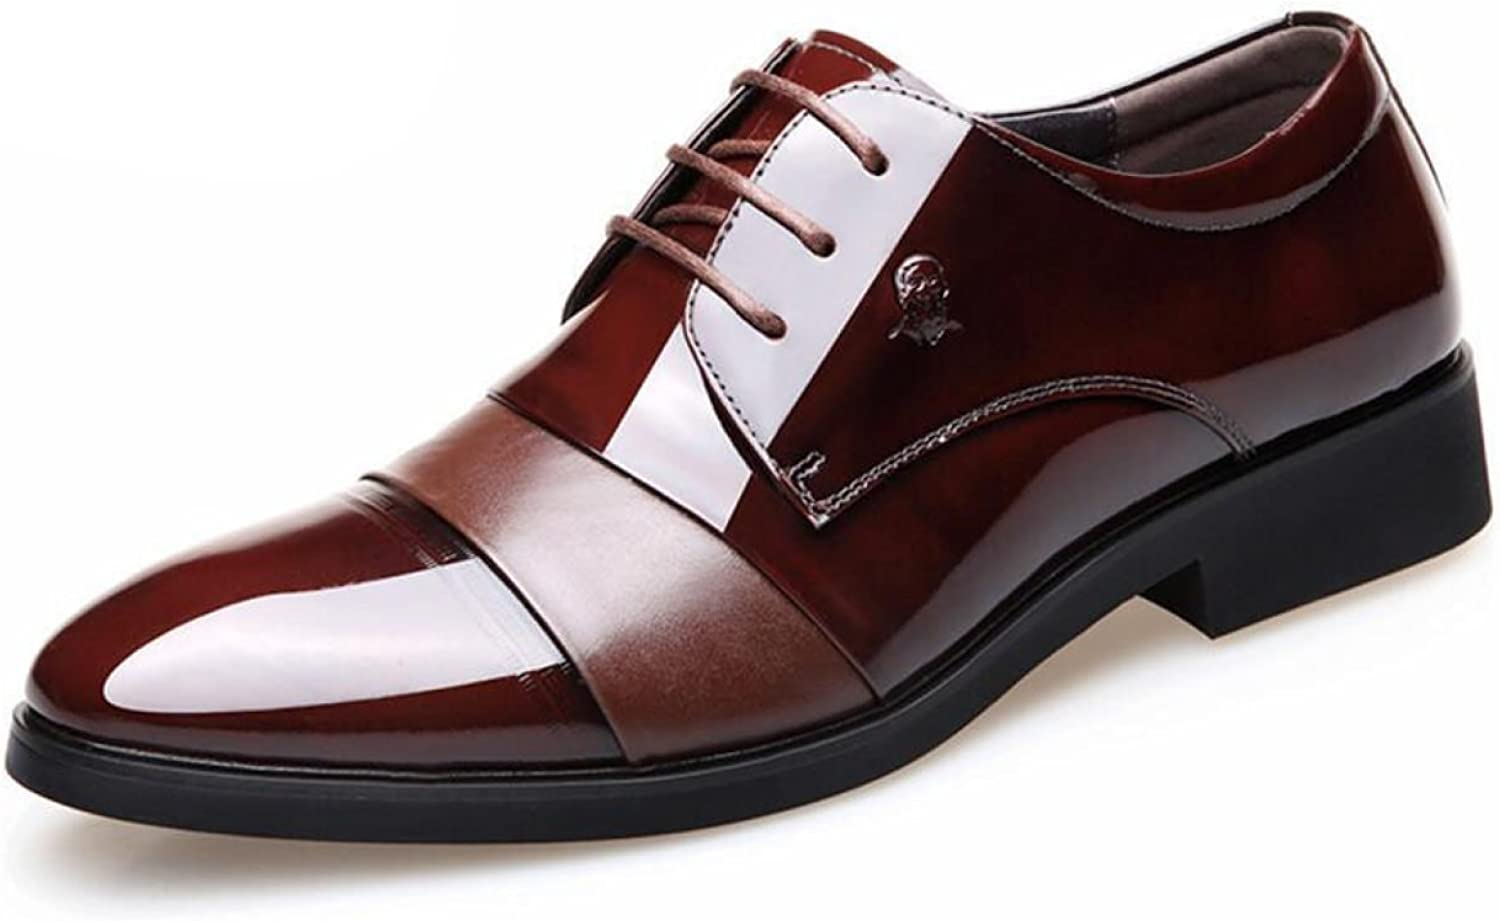 Men Stealth Within The Increase Men's shoes Business Suits Breathable Wedding shoes Groom Leather shoes